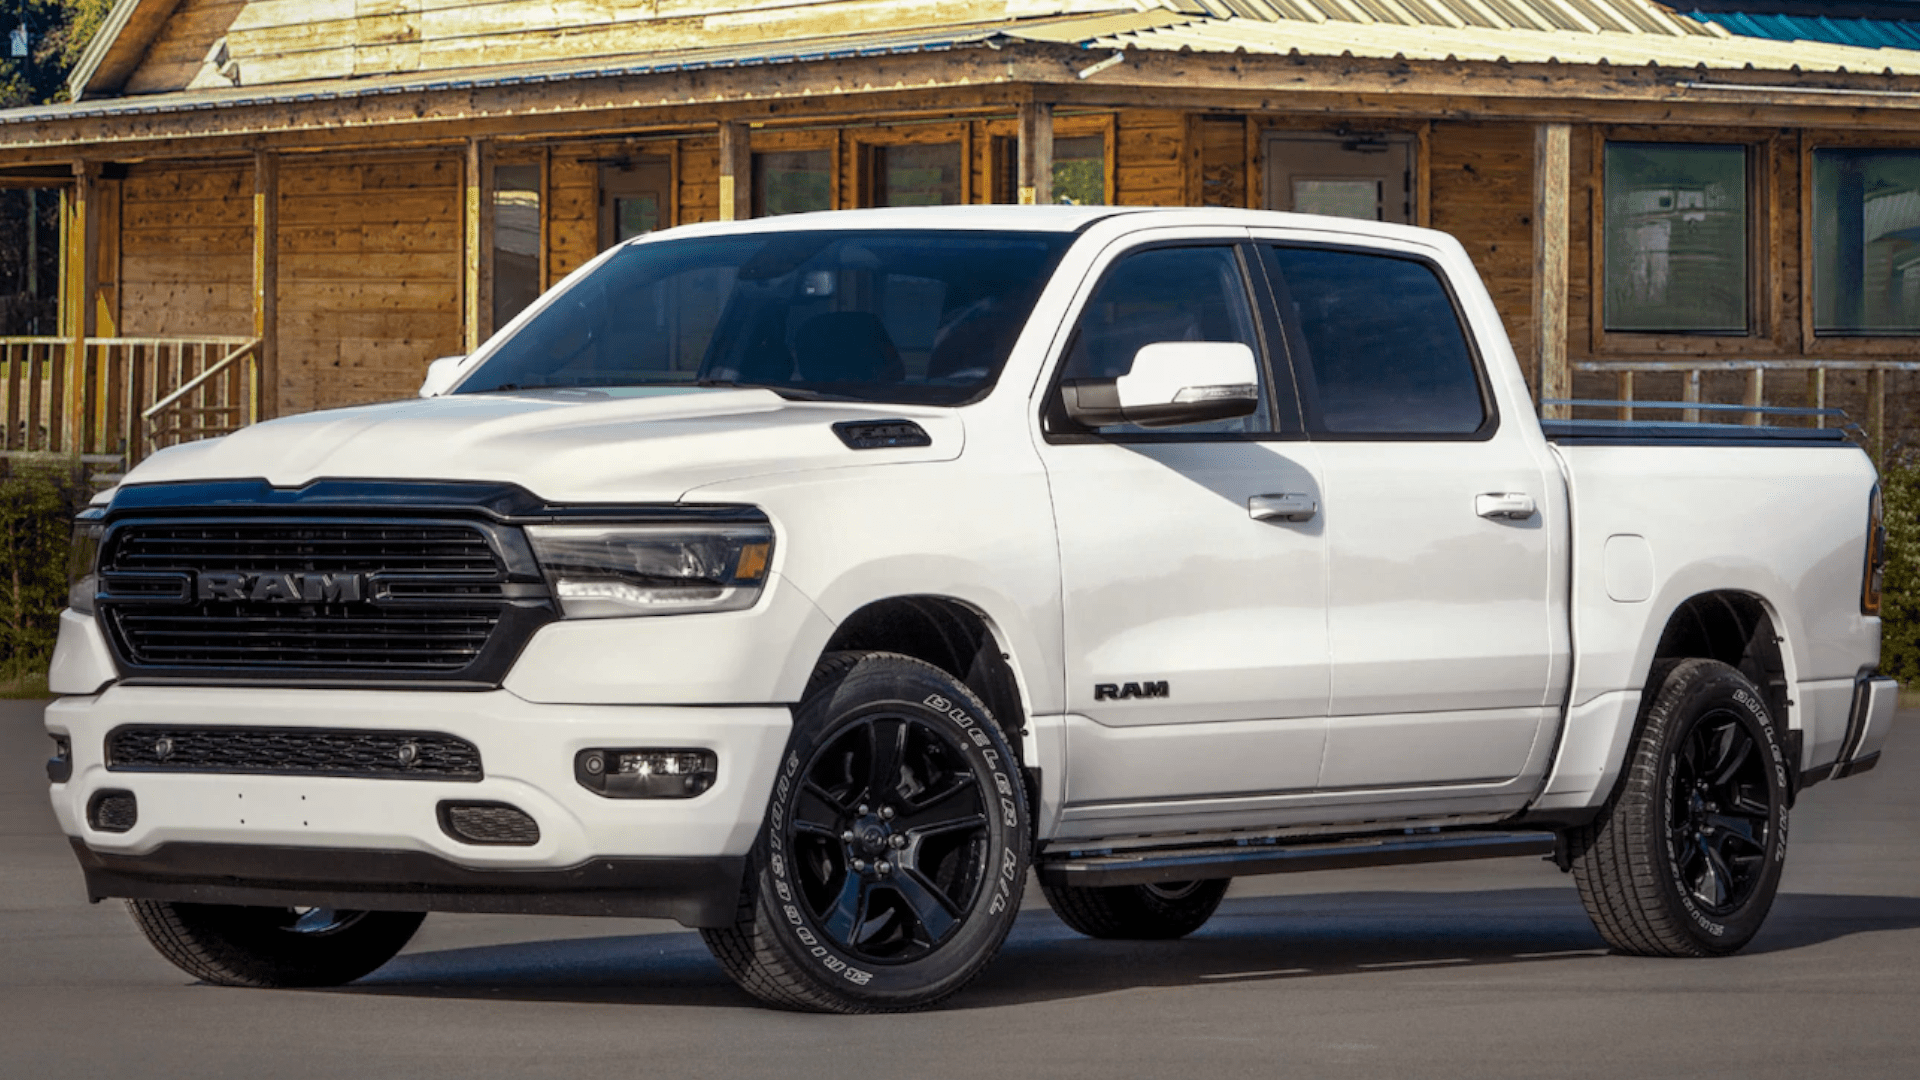 2020 Ram Truck Lineup Includes 1500 Night Edition